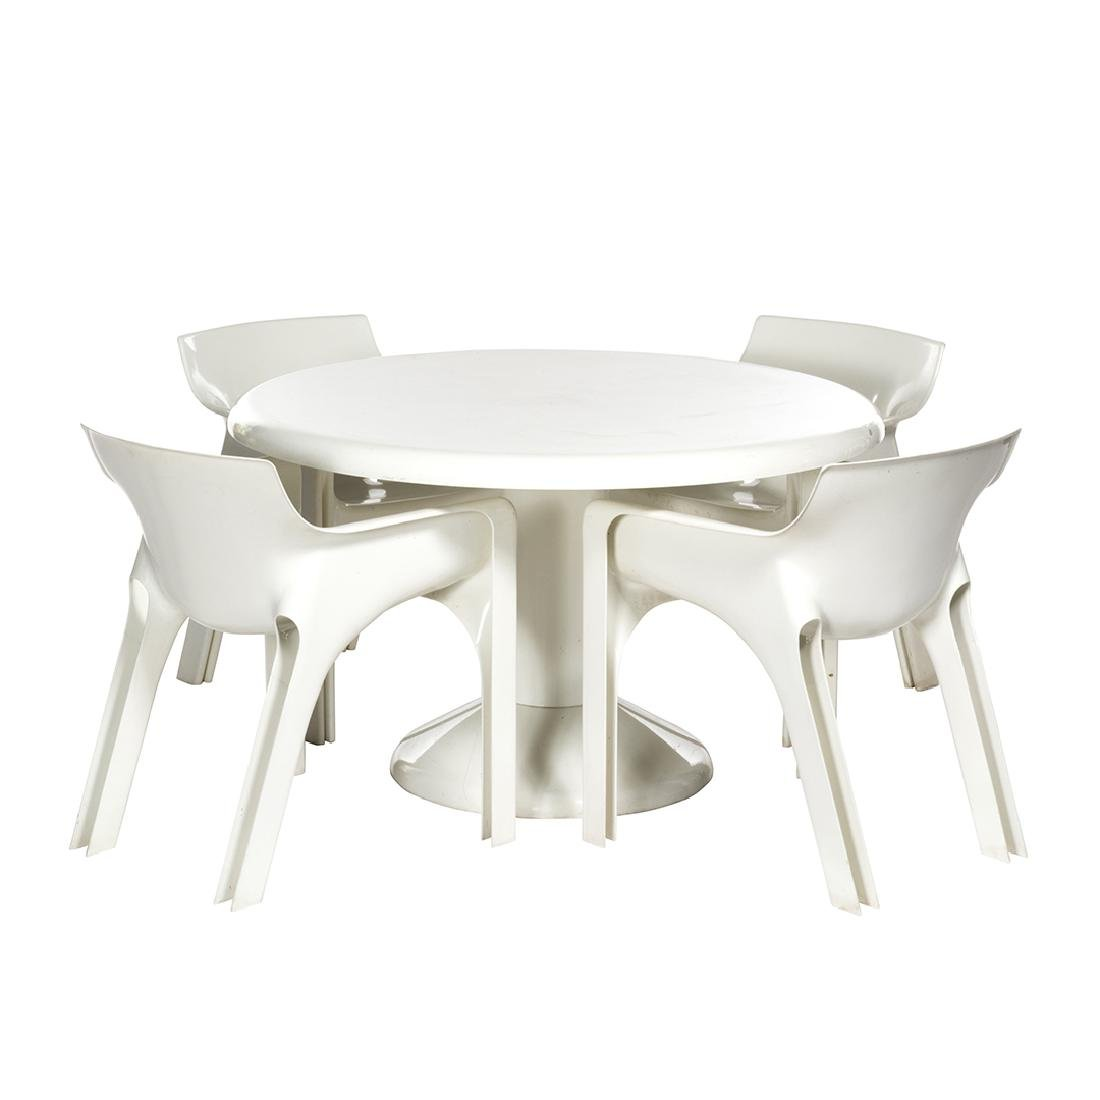 Vico Magistretti Table and chairs (5)